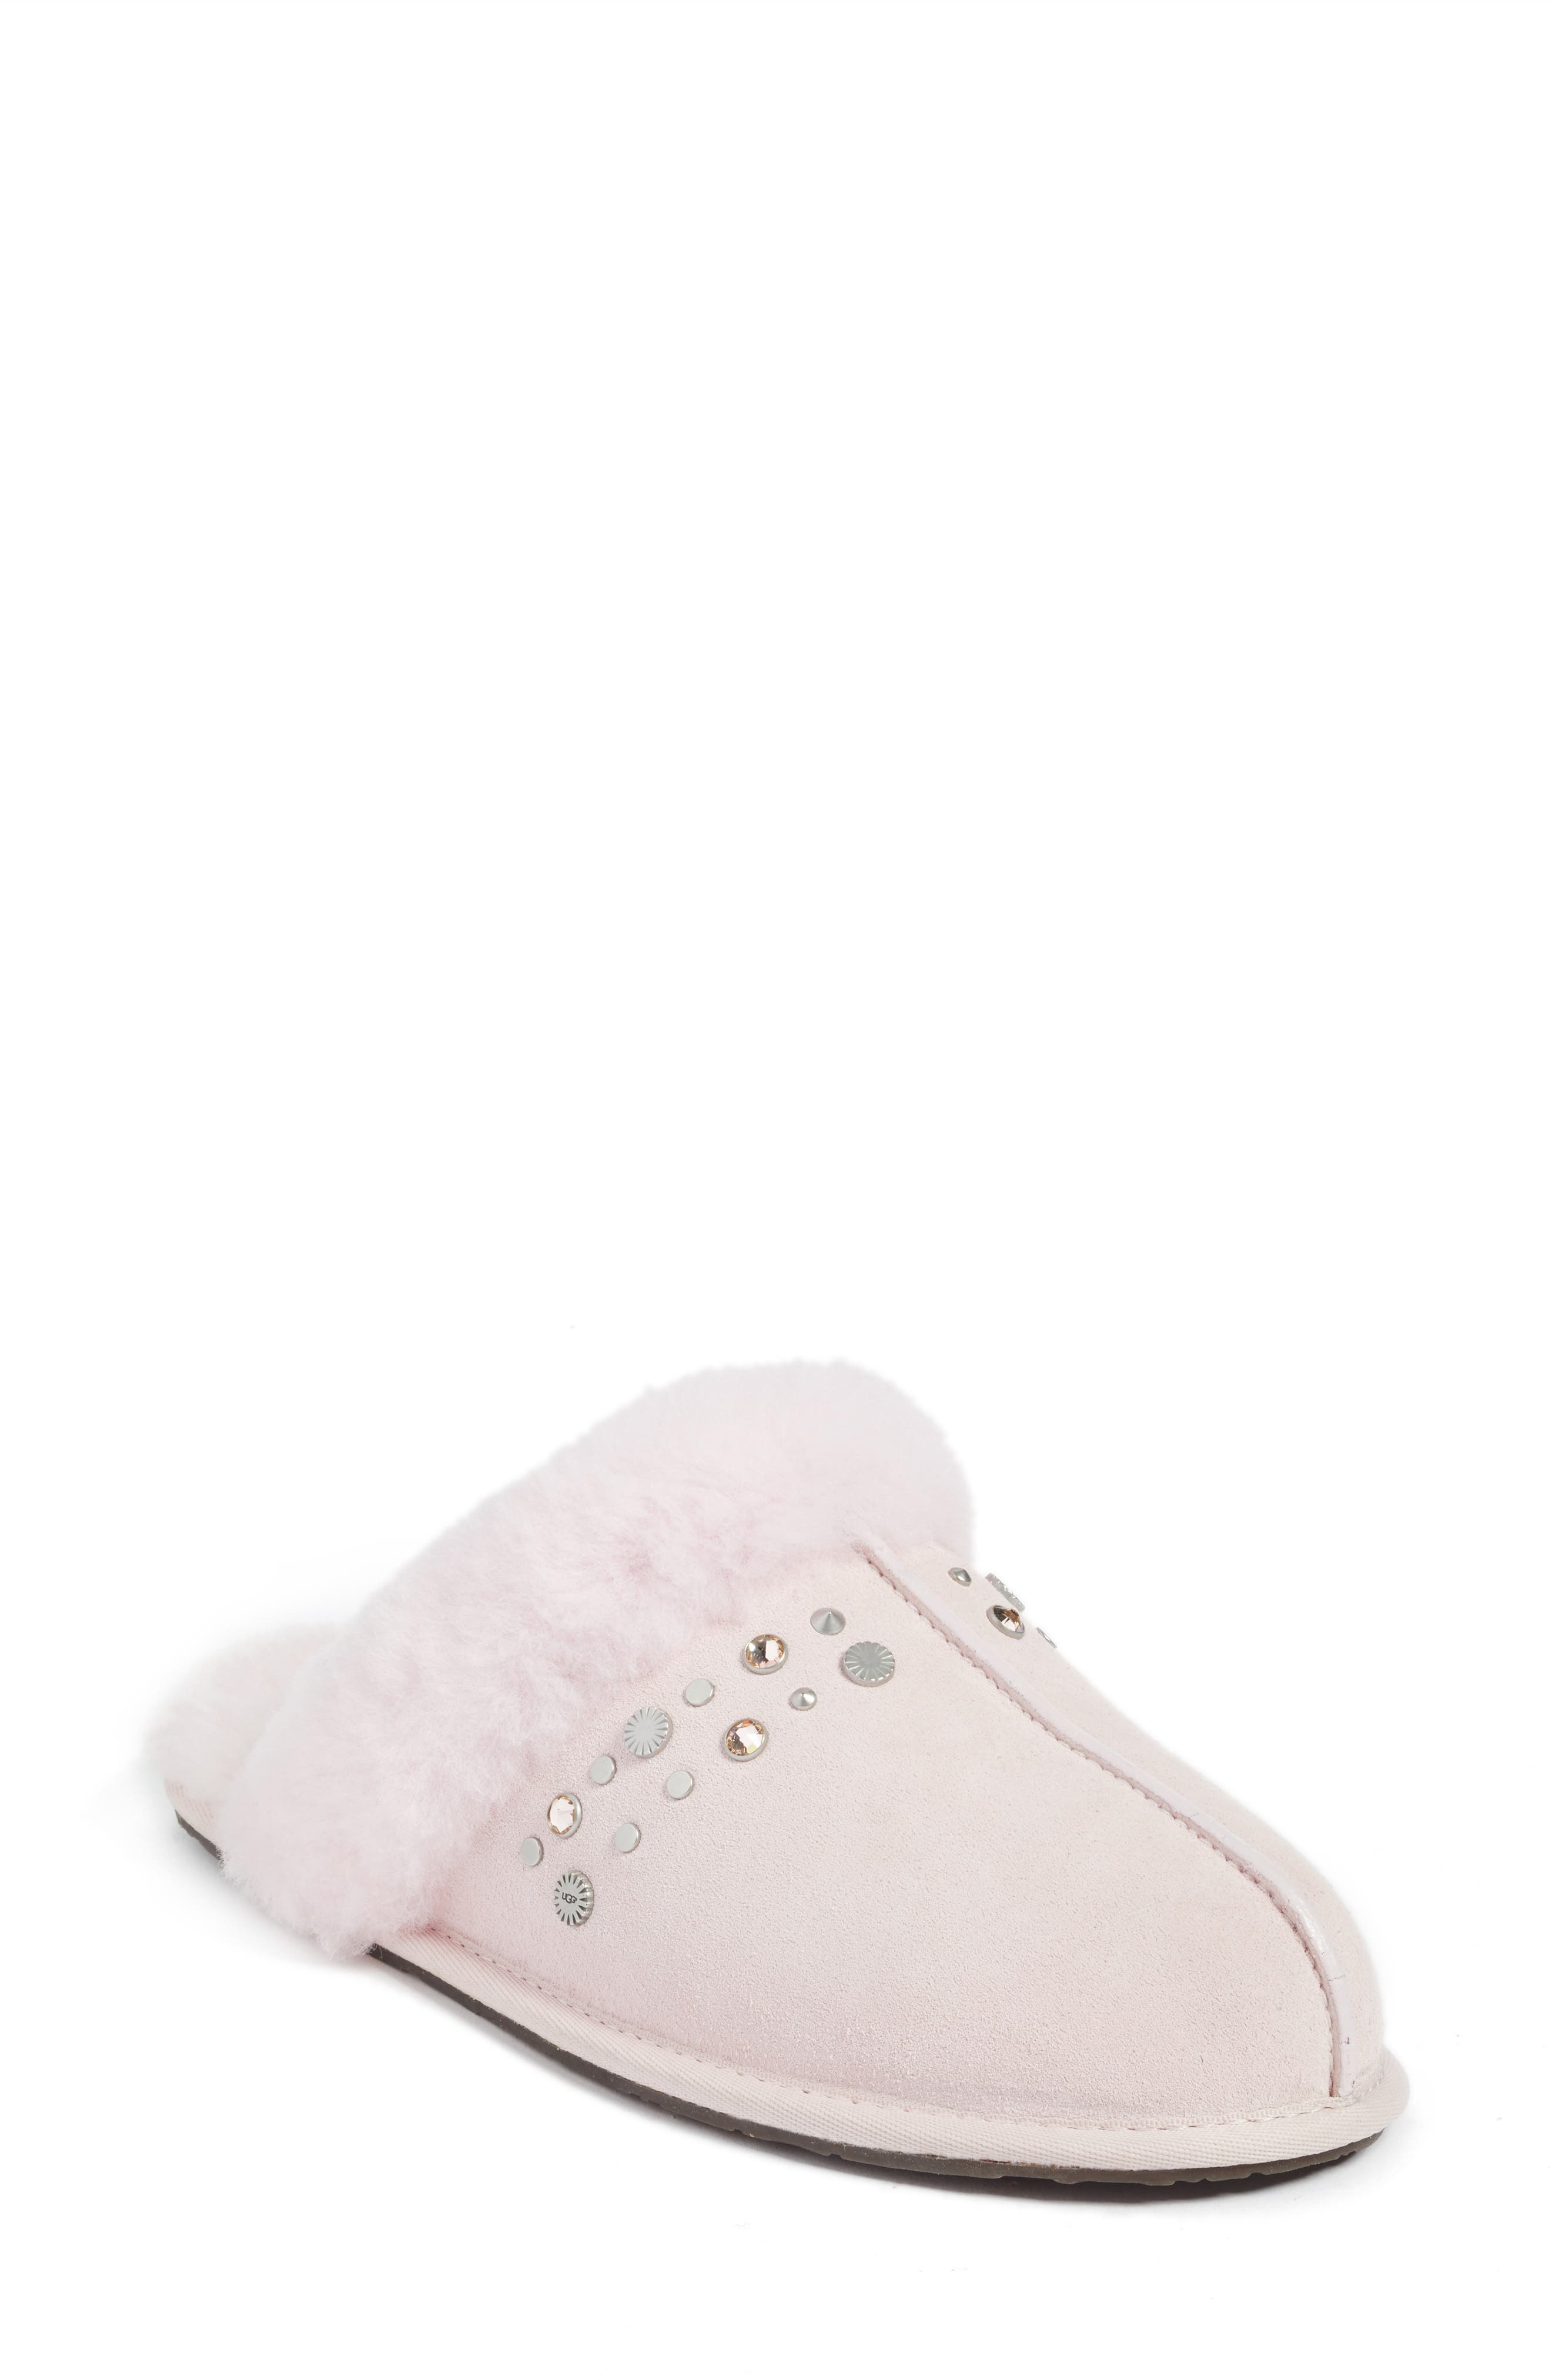 Scuffette II Studded Slipper,                             Main thumbnail 1, color,                             Seashell Pink